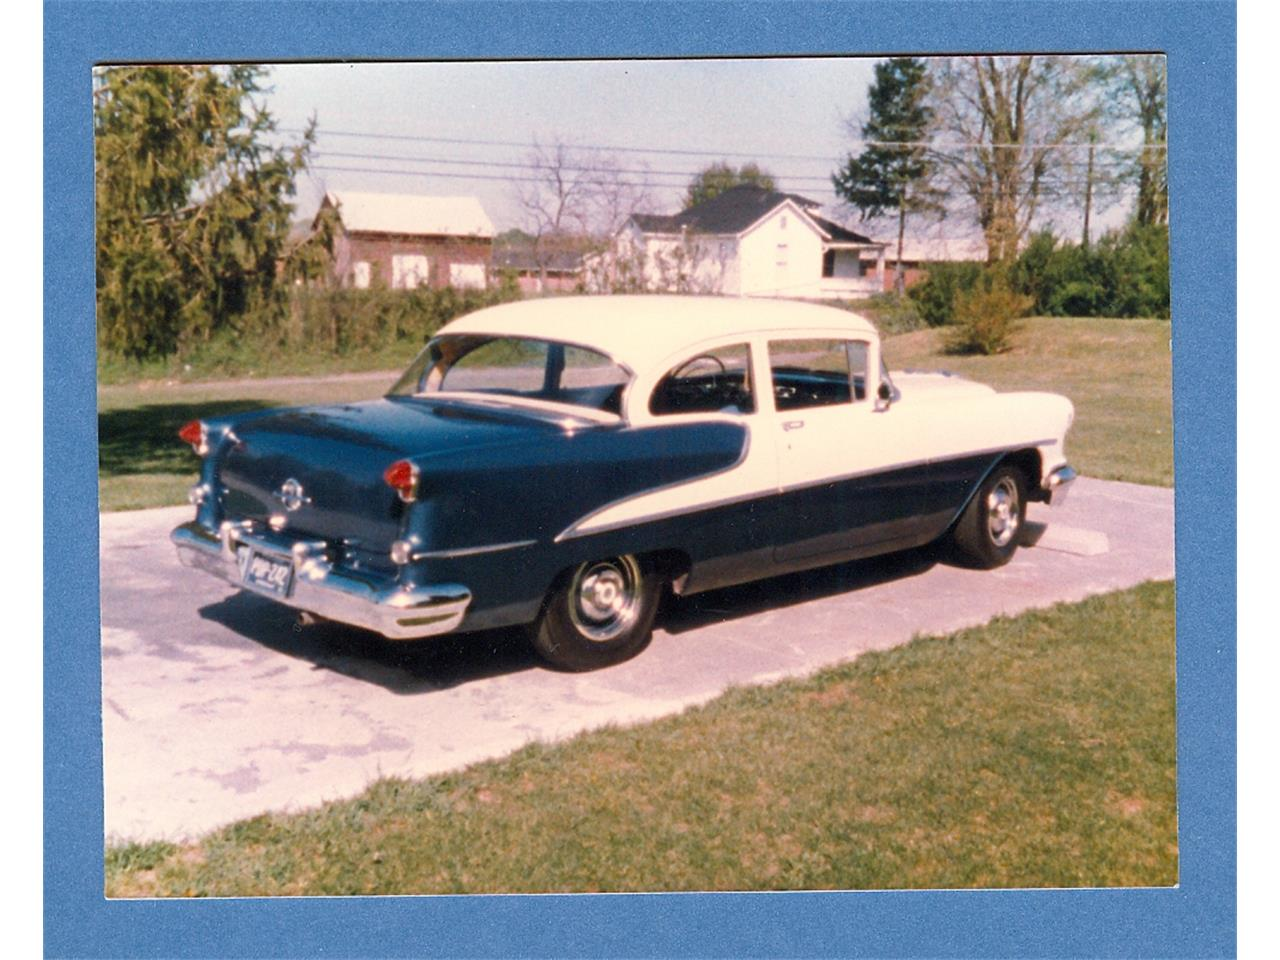 Large Picture of 1955 Oldsmobile Delta 88 located in Kentucky - $25,000.00 - Q2SW